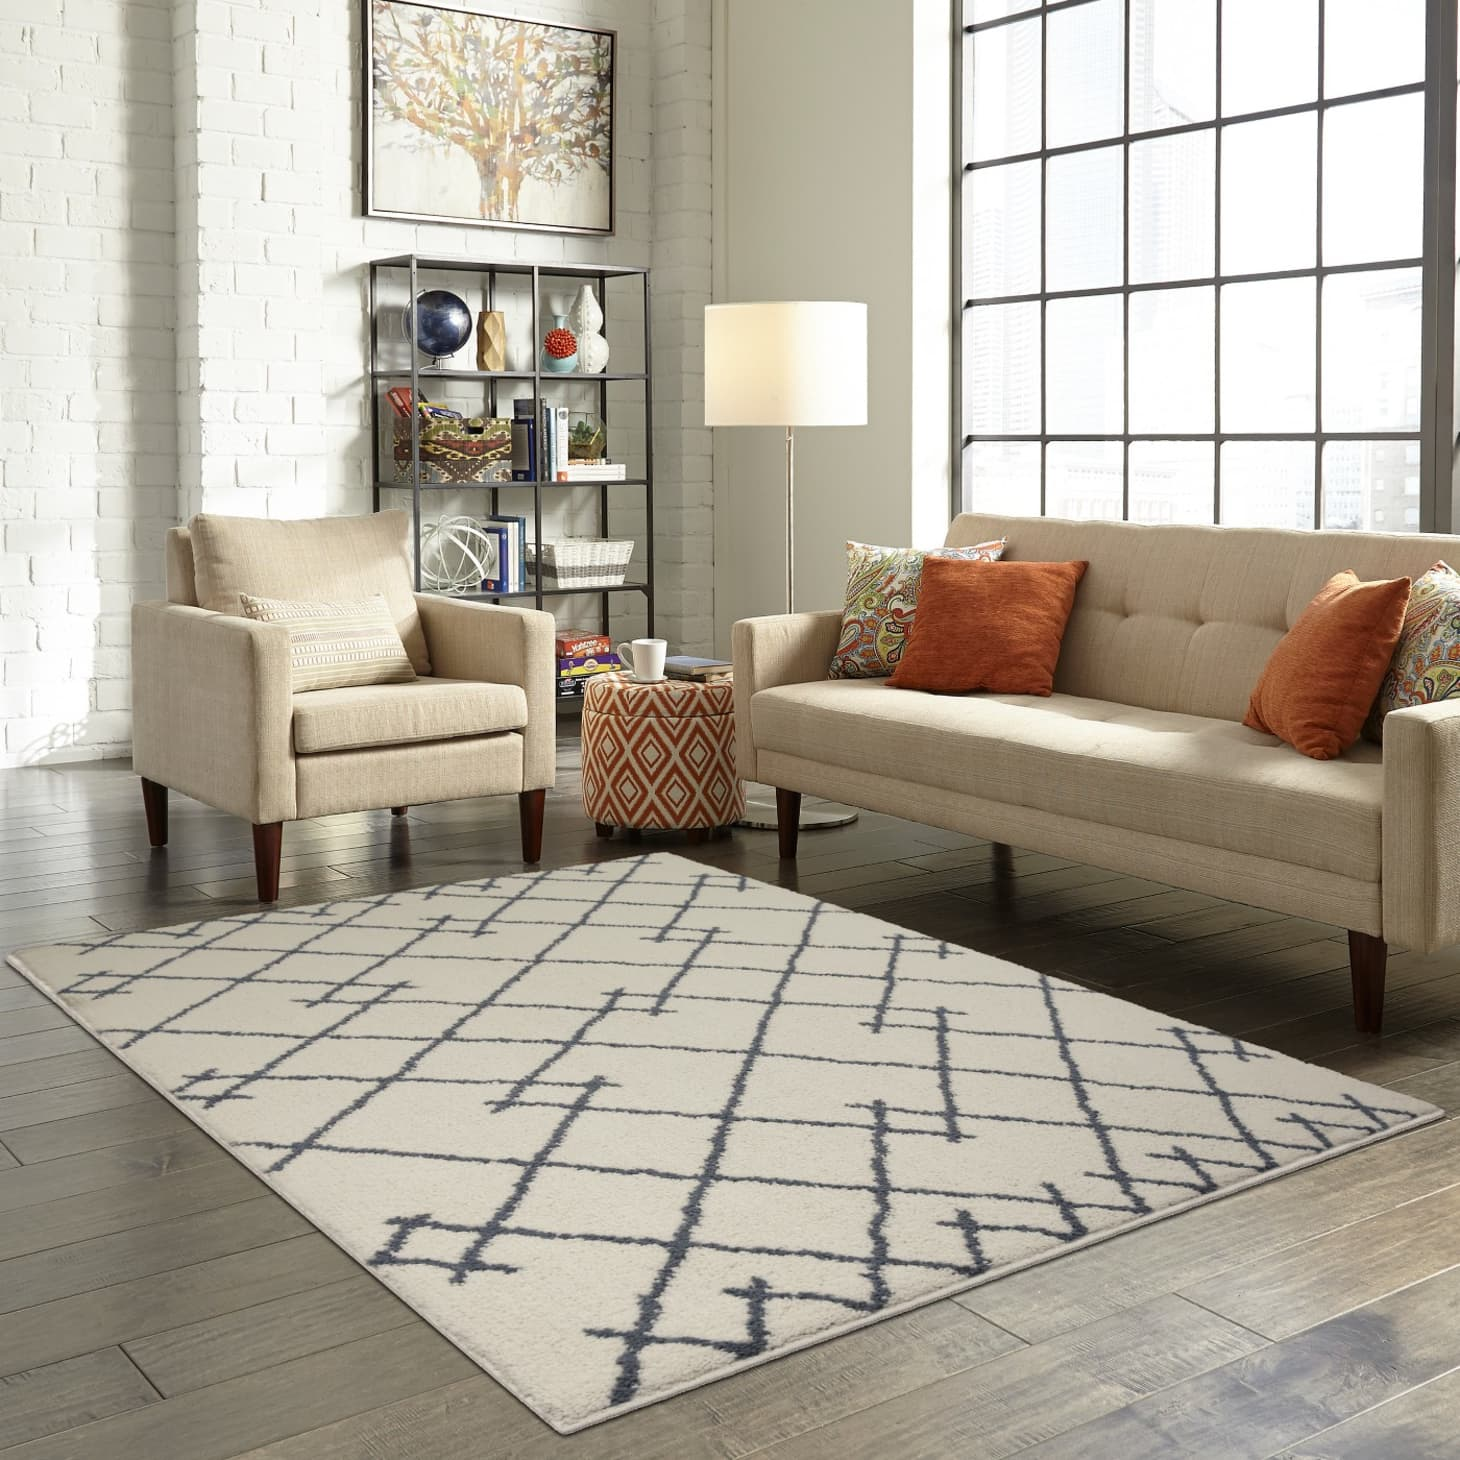 Style On A Budget 10 Sources For Good Cheap Rugs